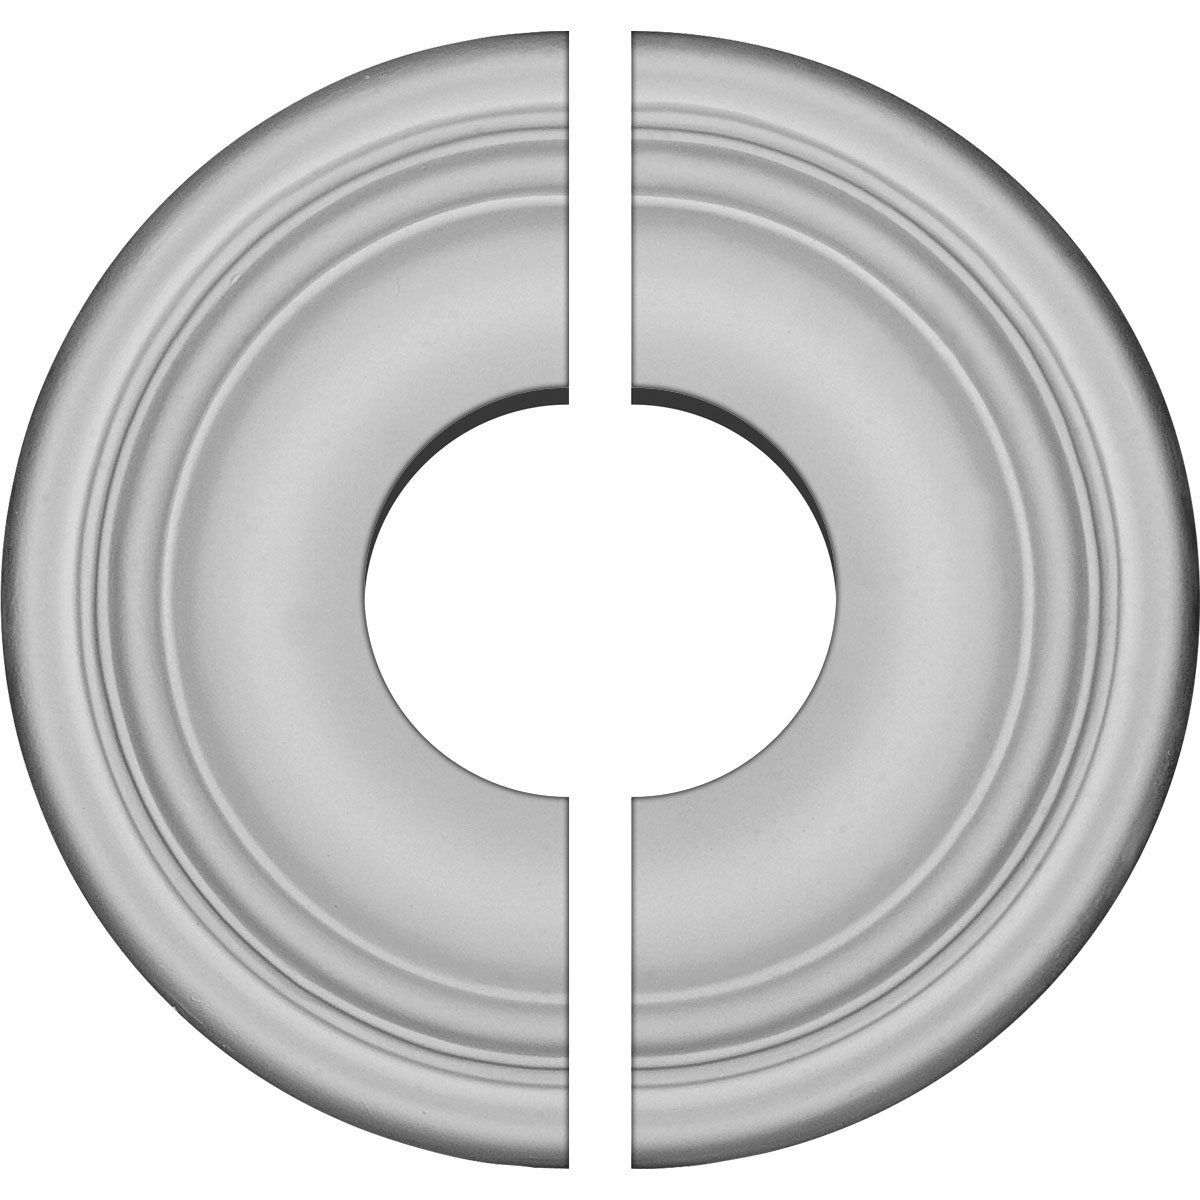 Ekena Millwork CM09MA2-03500 9 5/8''OD x 3 1/2''ID x 1 1/8''P Maria Ceiling Medallion, Fits Canopies up to 3-1/2'', 2 Piece